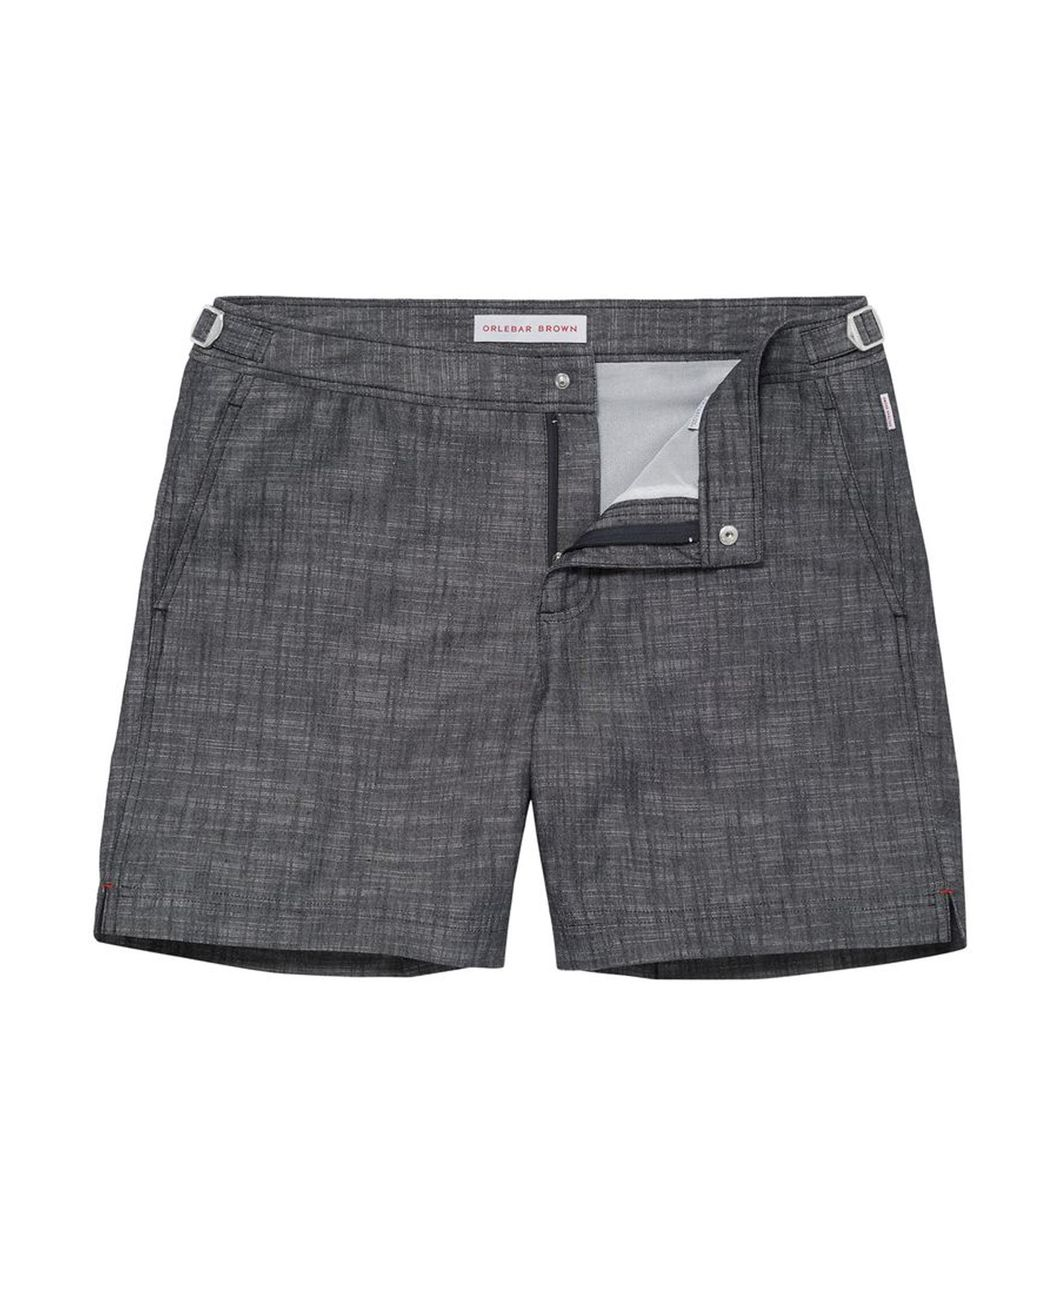 0f4370d745 Orlebar Brown Bulldog Chambray Shorts 2647 in Blue for Men - Lyst